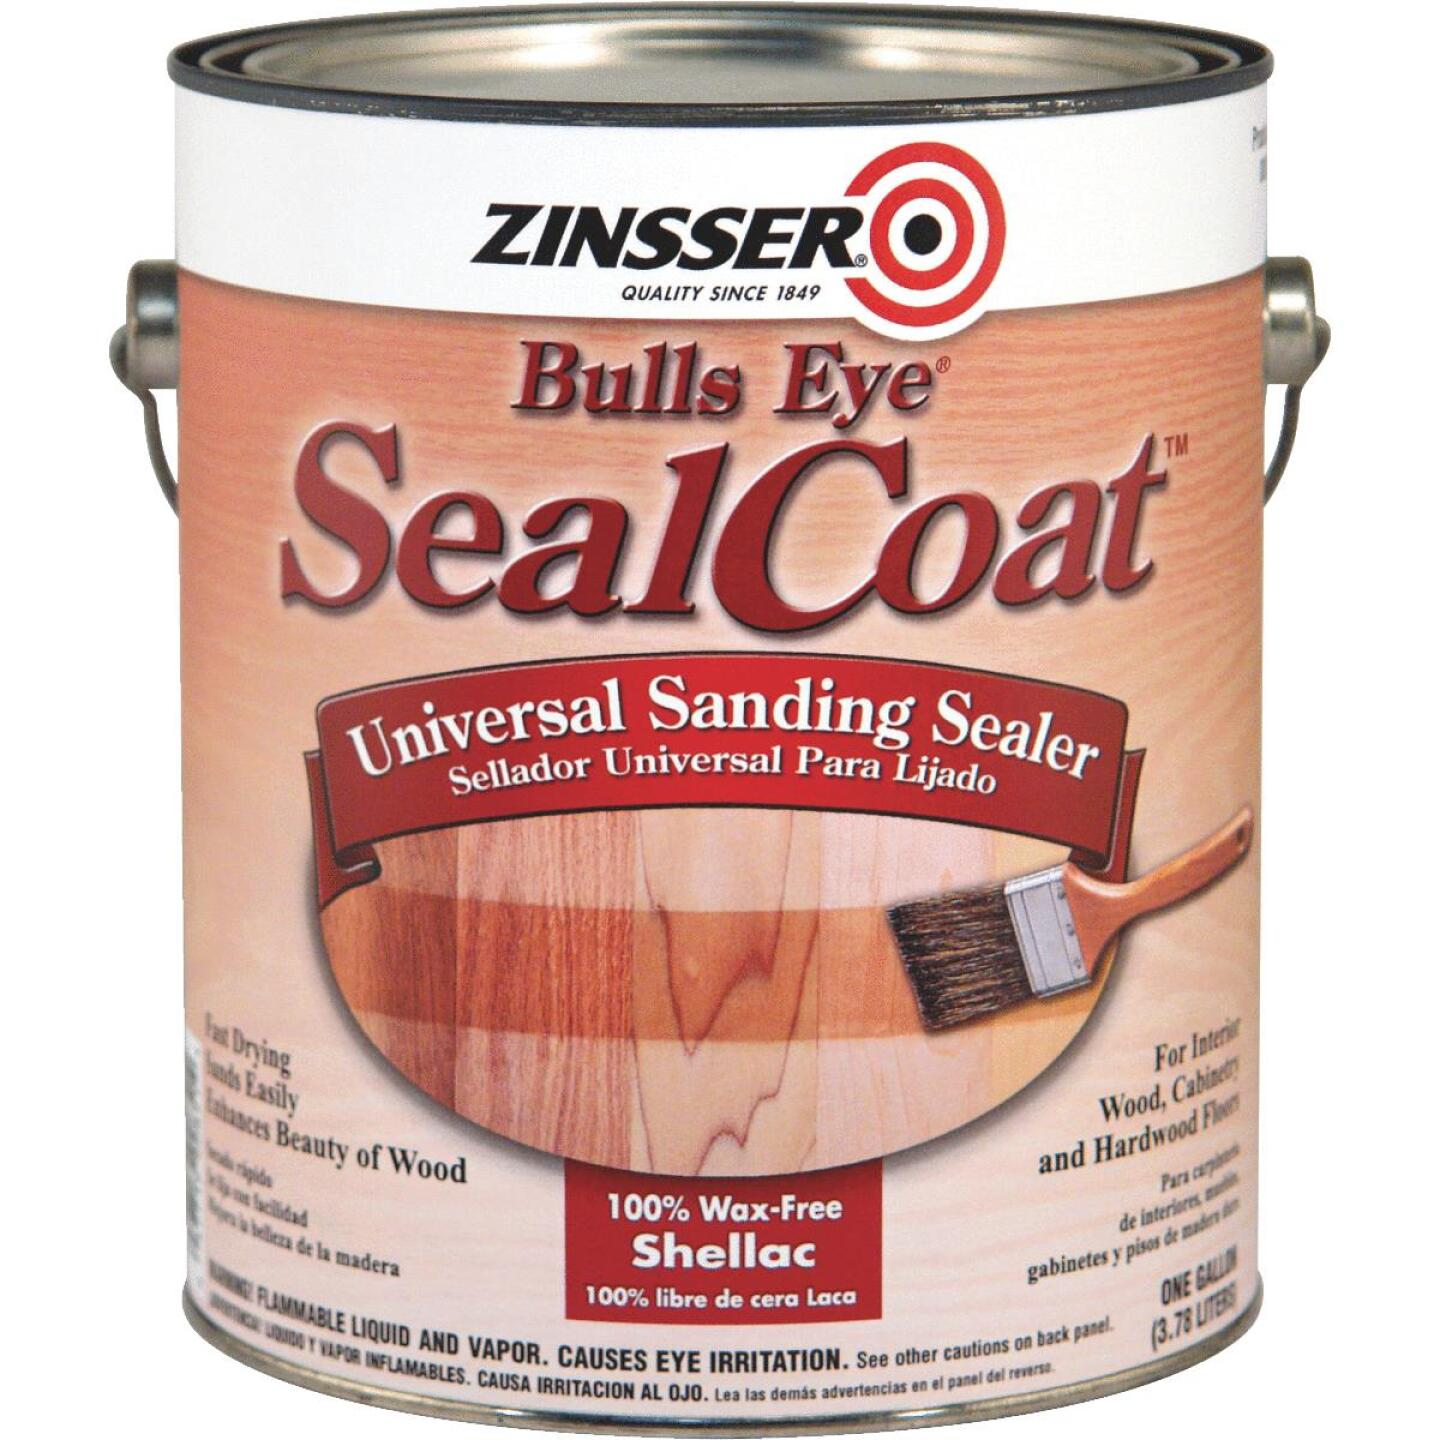 Bulls Eye SealCoat Sanding Sealer, 1 Gal. Image 1